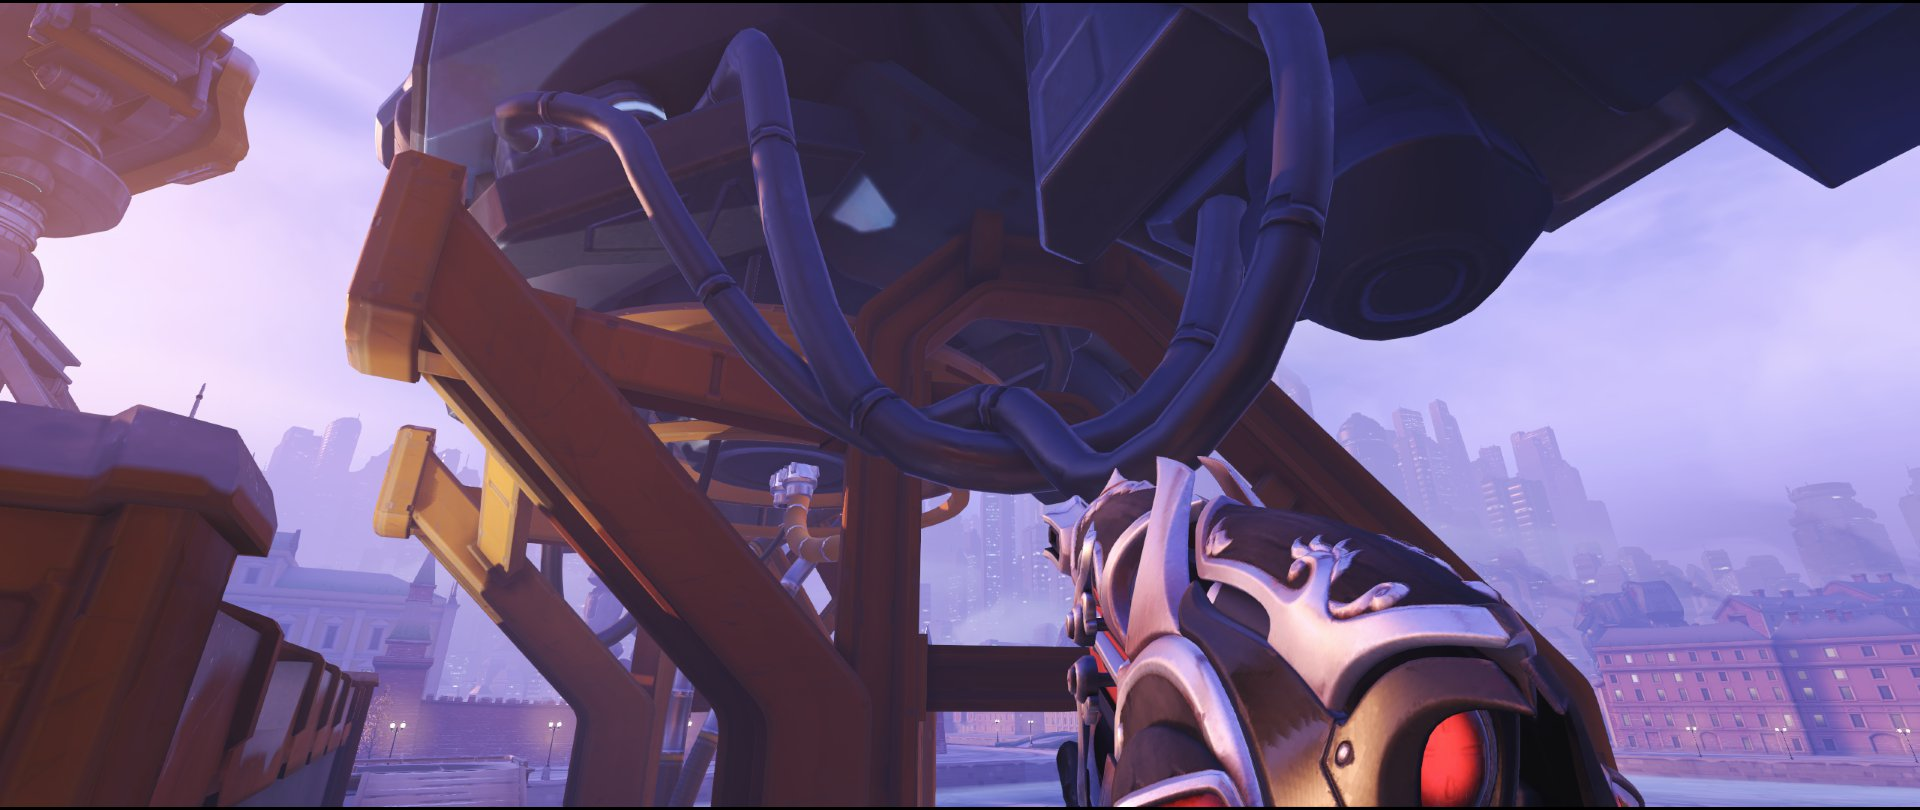 Robot first cable defense sniping spot Widowmaker Volskaya Industries Overwatch.jpg